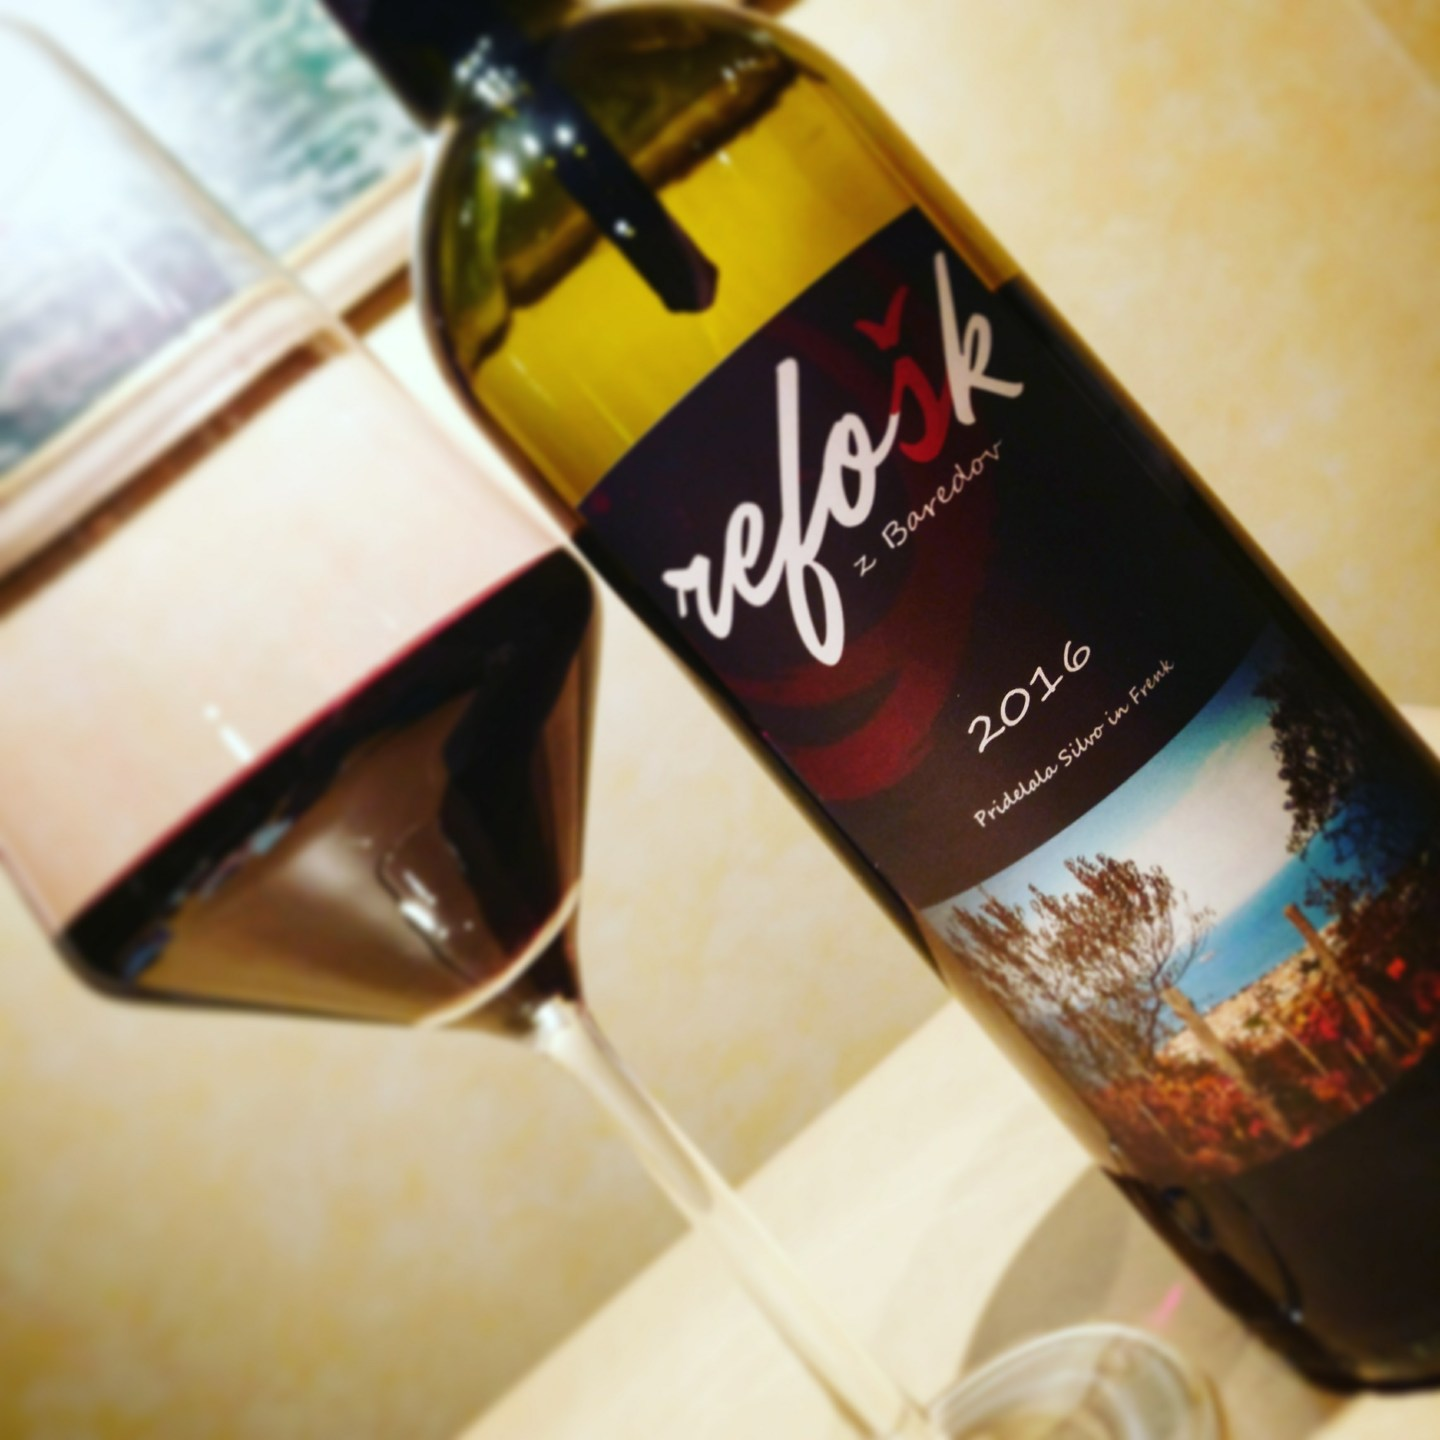 Weekly Wine #6 – My uncle's fantastic refošk